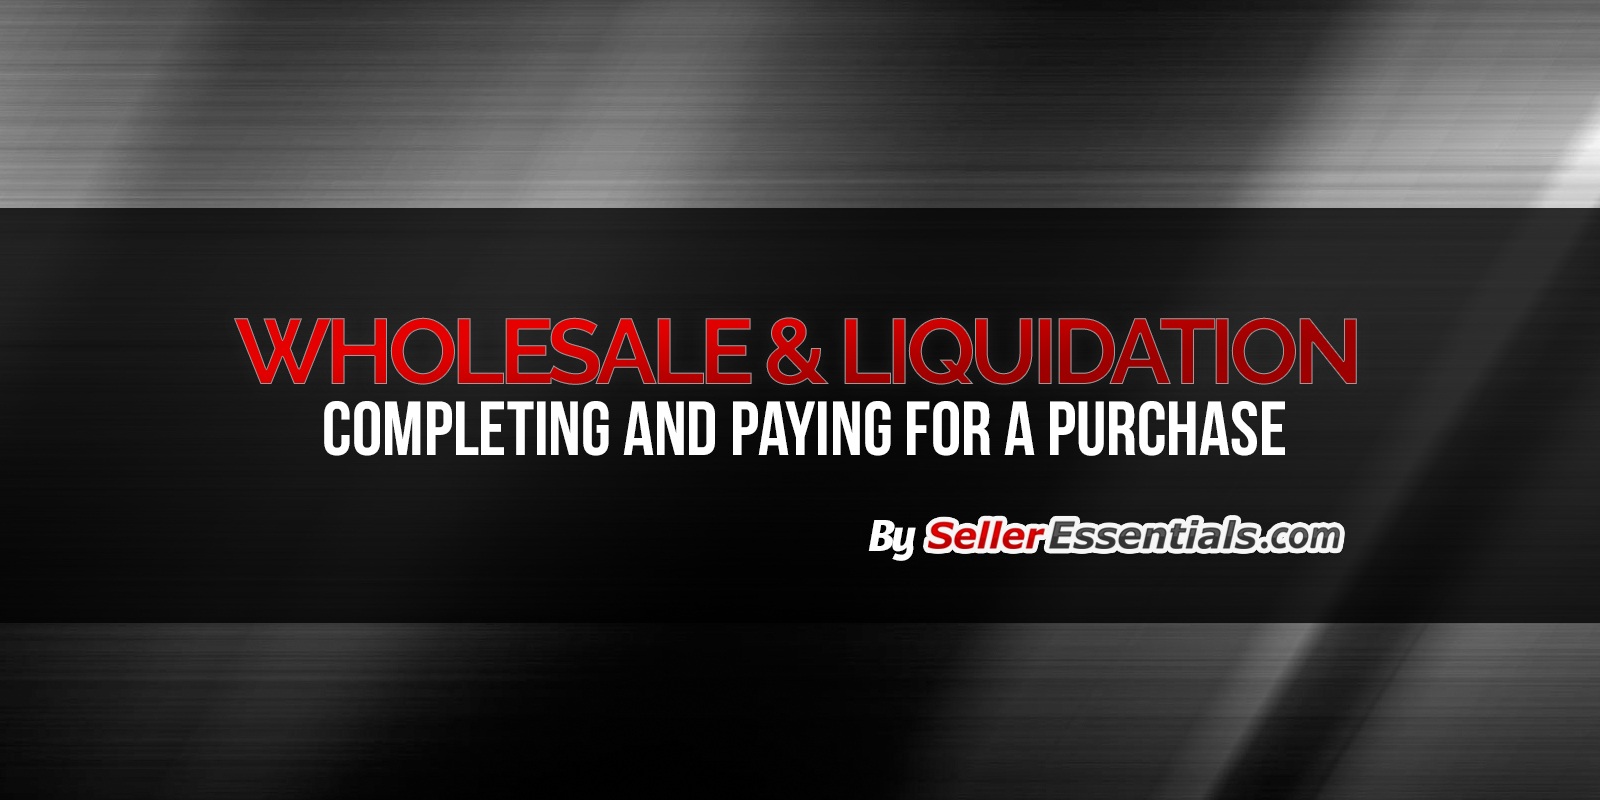 Wholesale & Liquidation - Completing and paying for your purchase